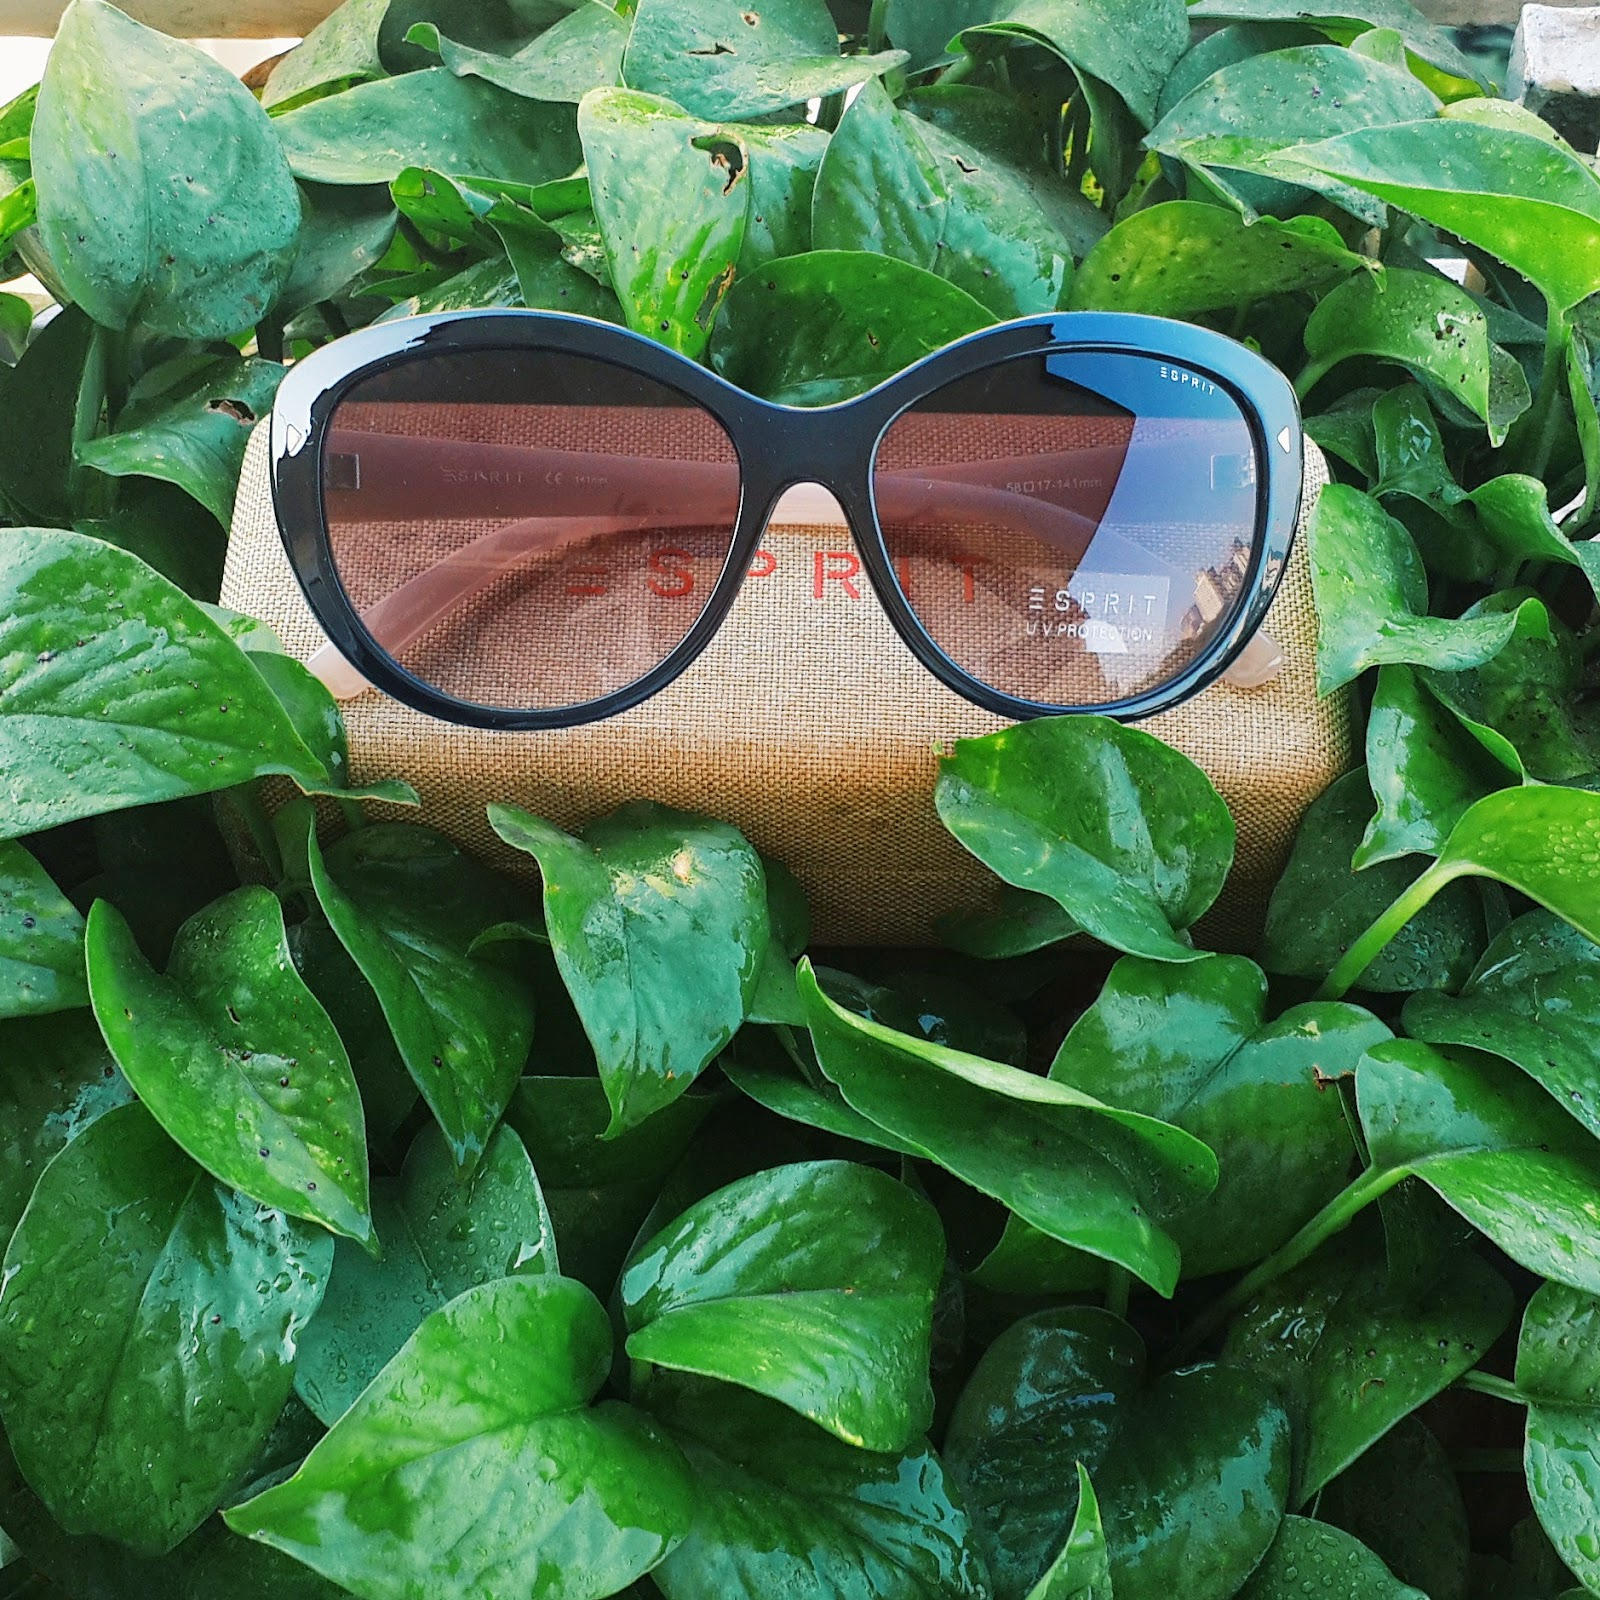 Dayle Pereira of Style File India shoots her Esprit cat eye framed sunglasses from Specs Appeal in a field of green leaves